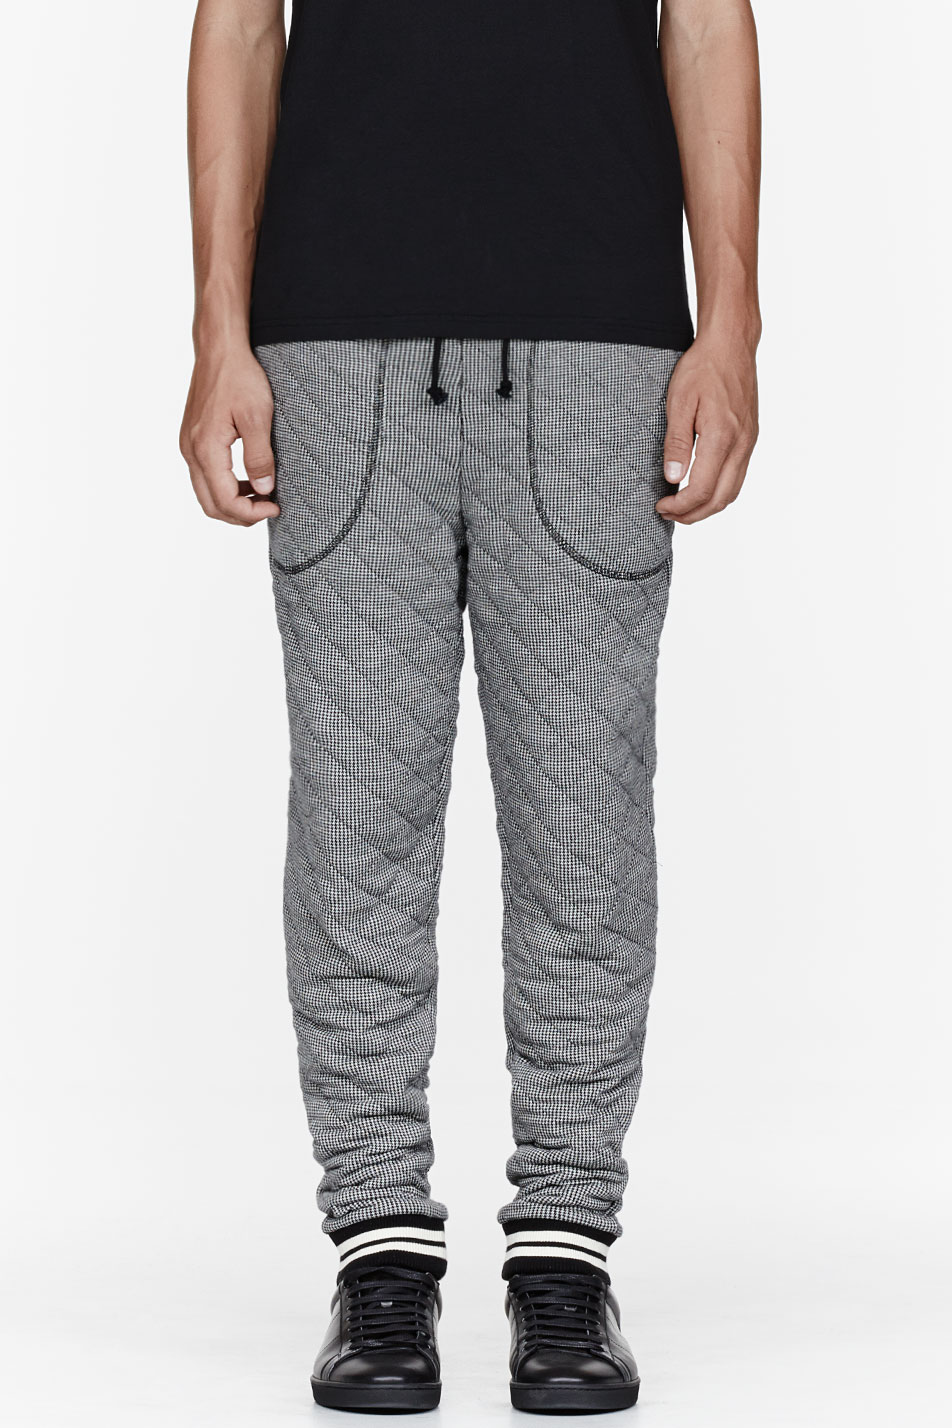 Band Of Outsiders Black Quilted Houndstooth Jogging Pants